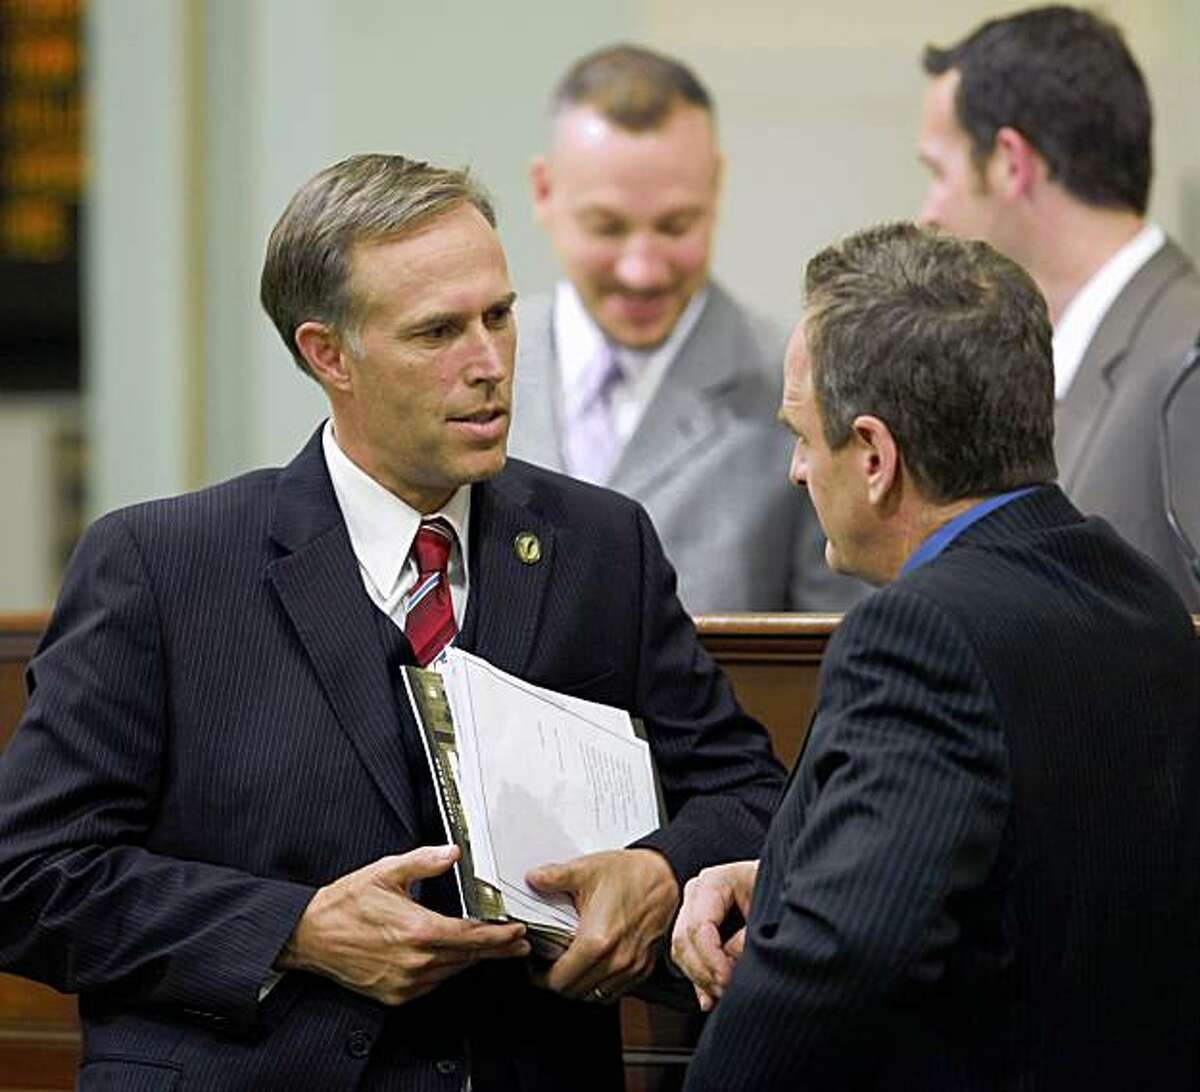 Assemblyman Jared Huffman, D-San Rafael, left, talks with Assembly Minority Leader Sam Blakeslee, R-San Luis Obispo, during the Assembly session at the Capitol in Sacramento on Monday. Huffman is carrying several water measures.